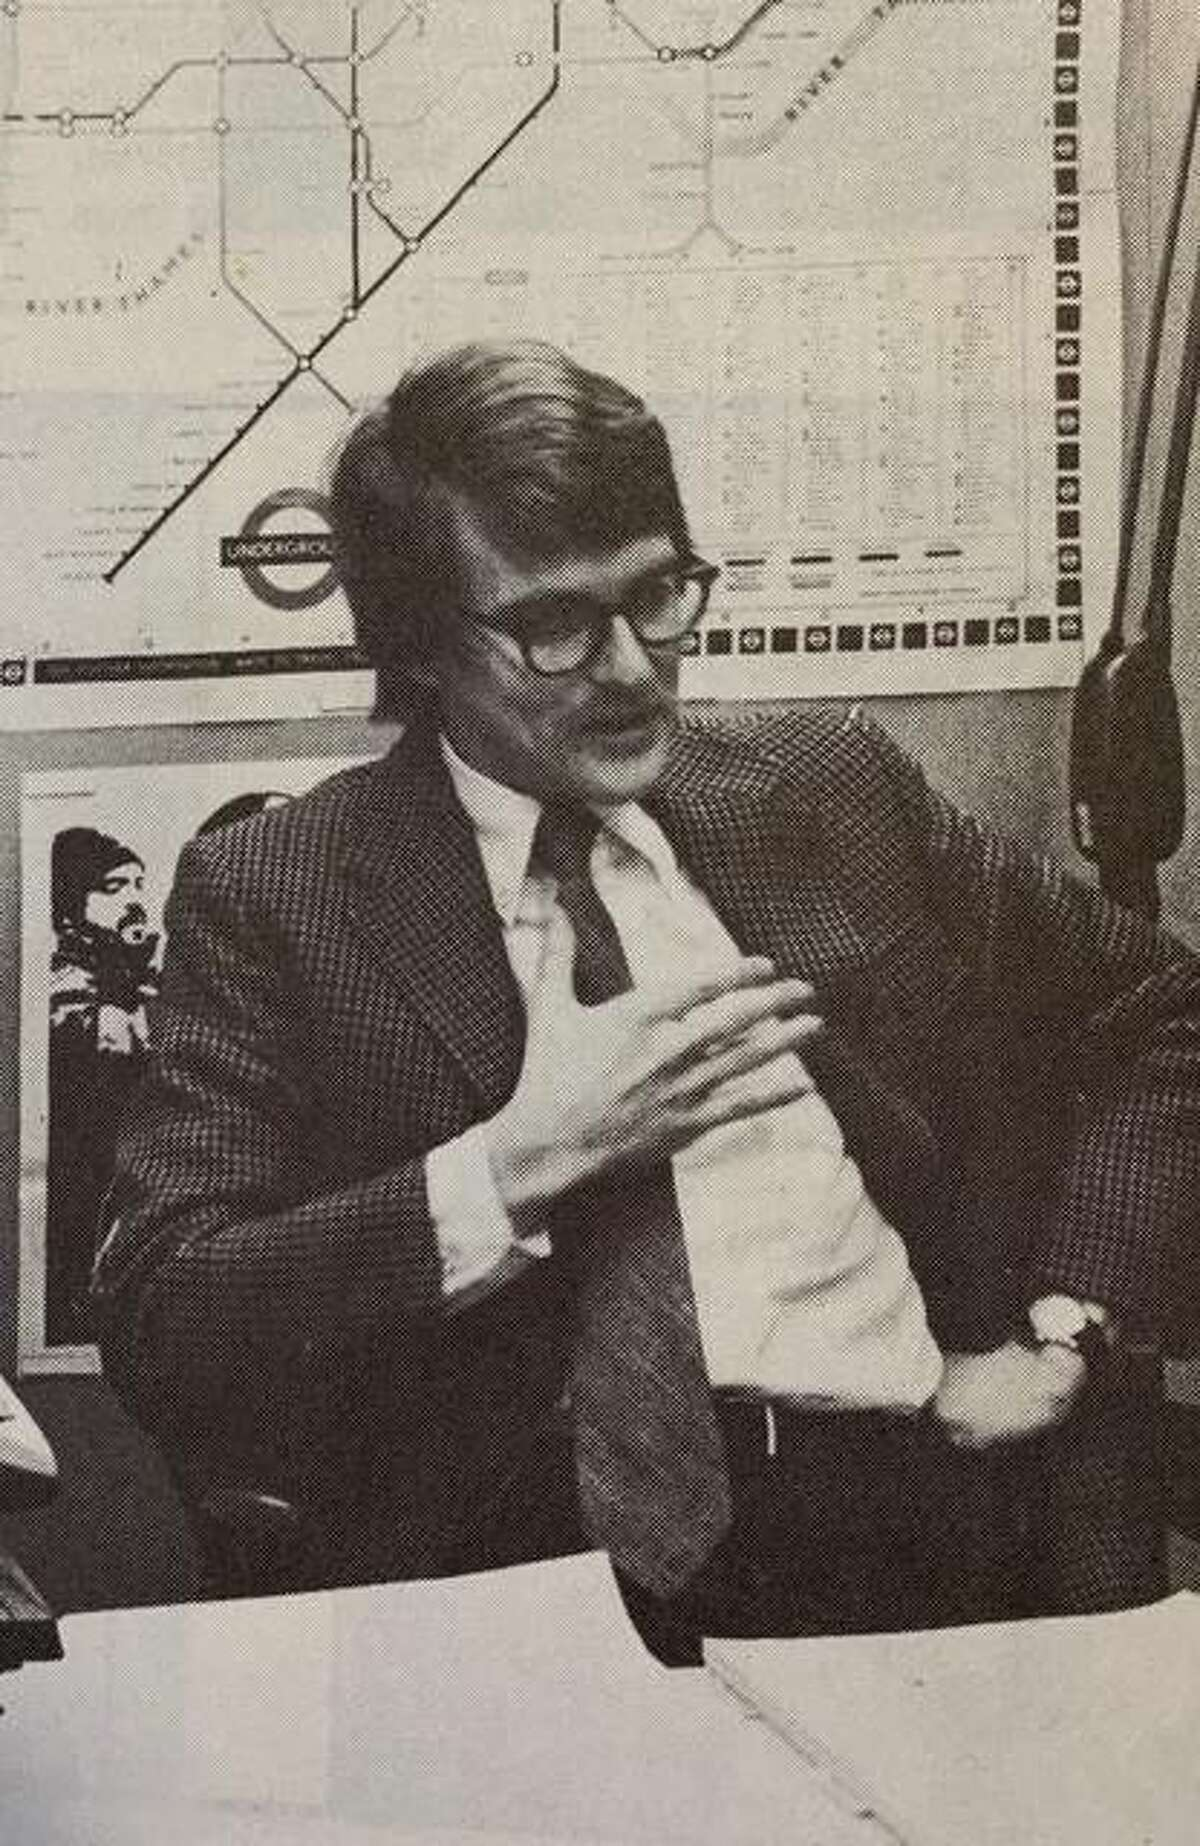 Paul Gaston as a professor at SIUE in 1971. Gaston was at SIUE in May 1970 when students protested at the school after four unarmed Kent State University students were shot and killed by the Ohio National guard during an anti-war rally.